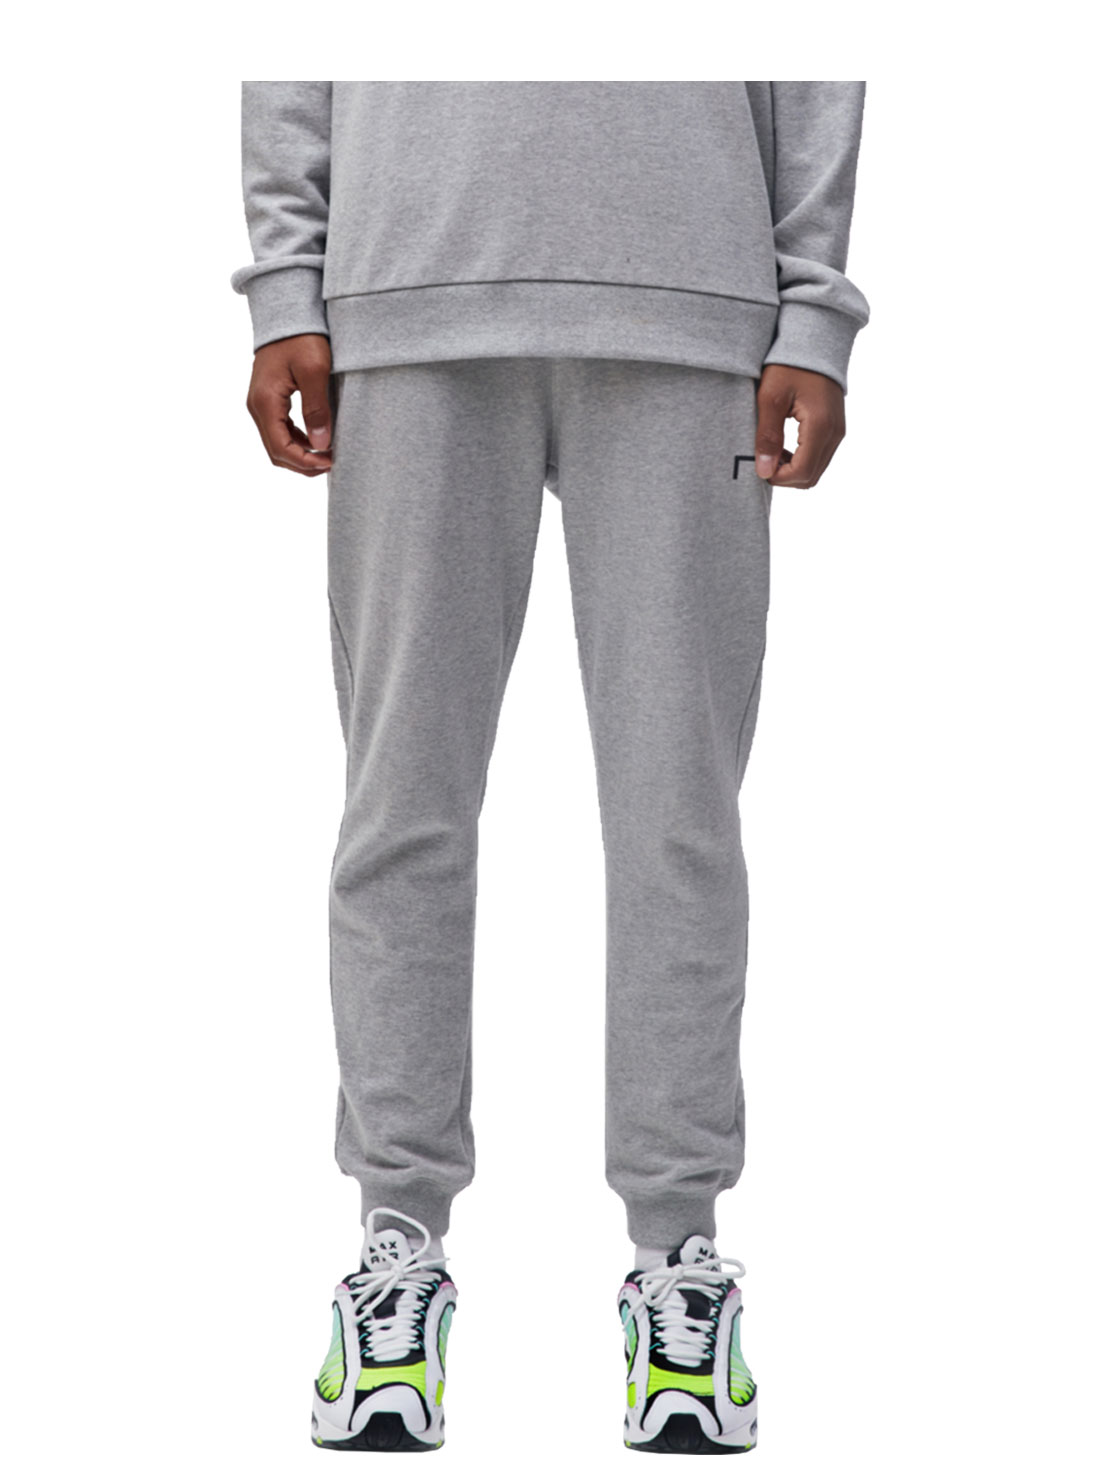 GOALSTUDIO GOAL KNIT JOGGER PANTS - GREY